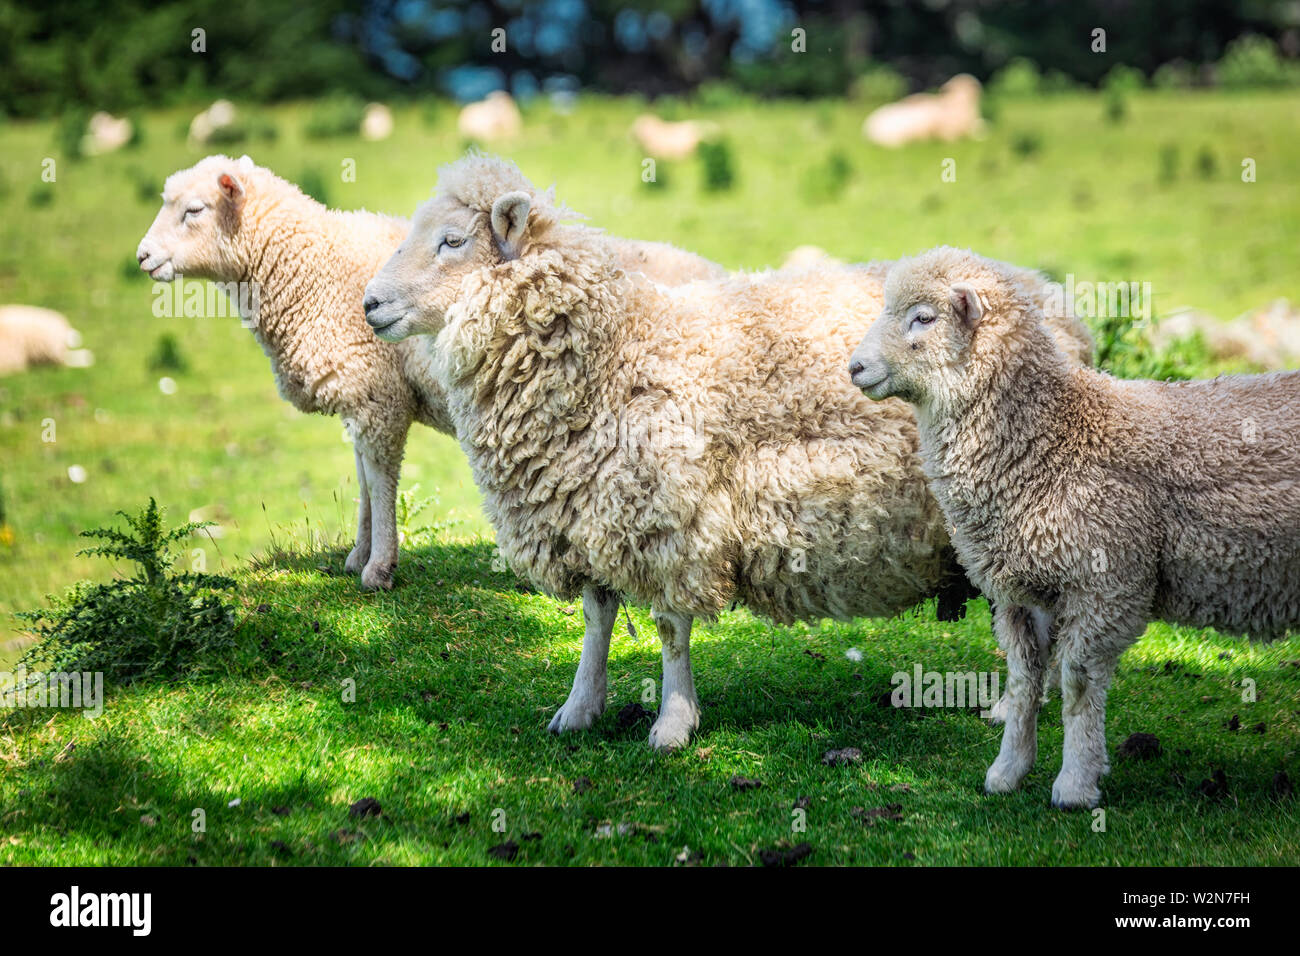 Sheep in a green meadow near Dunedin Southern Scenic Route, New Zealand. - Stock Image